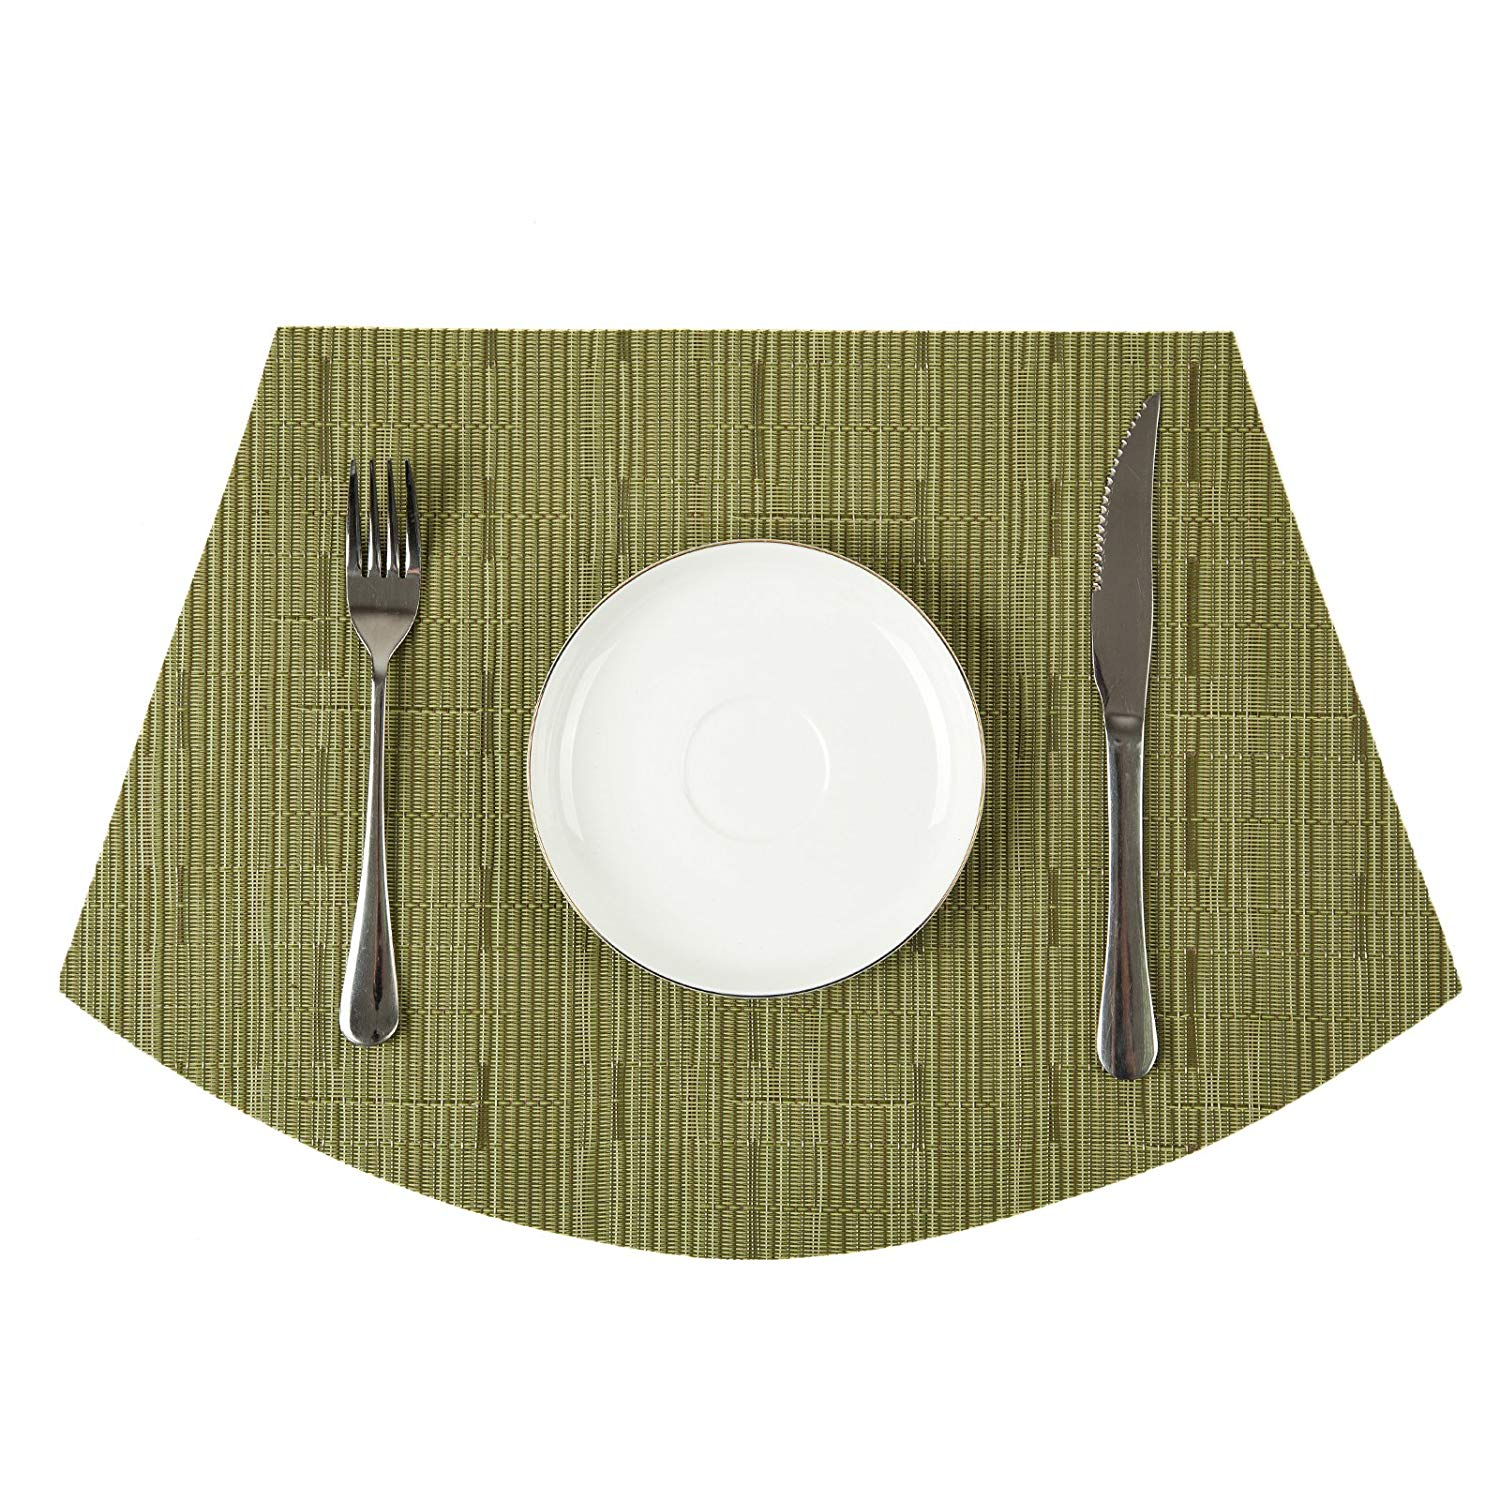 Pattern For Placemats For Round Table.Cheap Conference Table Placemats Find Conference Table